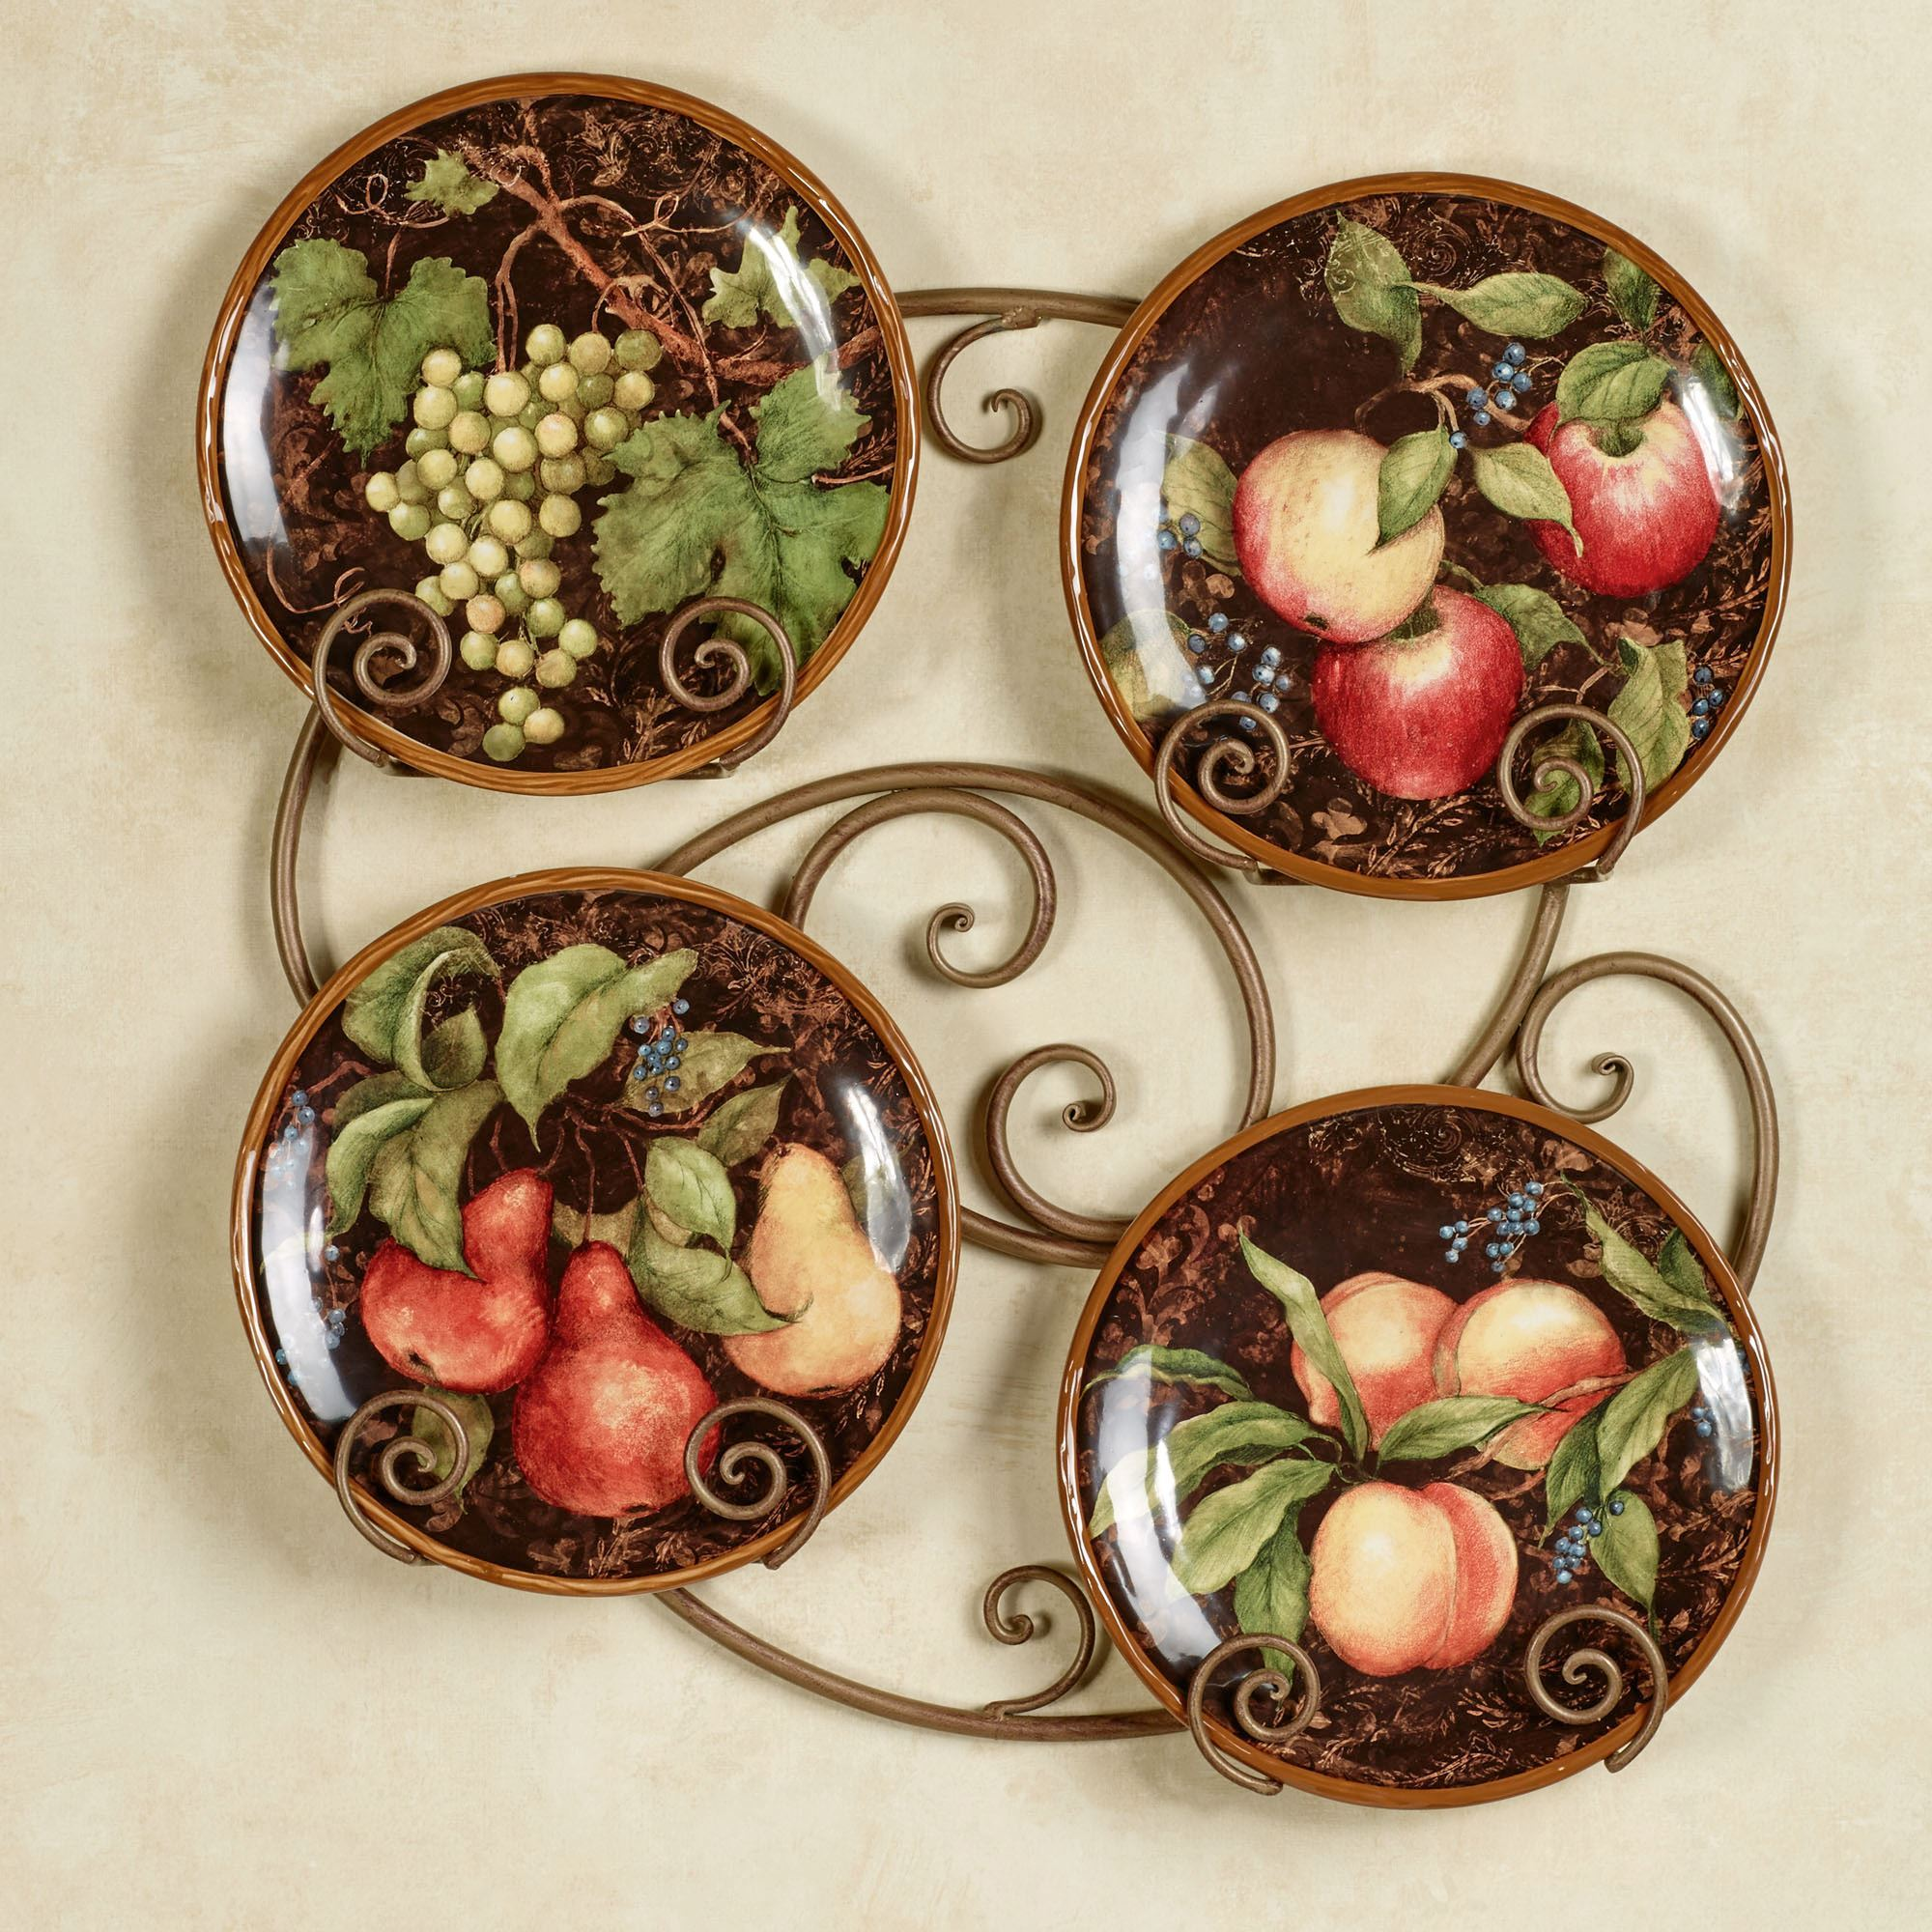 Decorative Plates For Kitchen Wall Magnificent Kitchen And Dining Room Wall  Decor Touch Of Class Inspiration